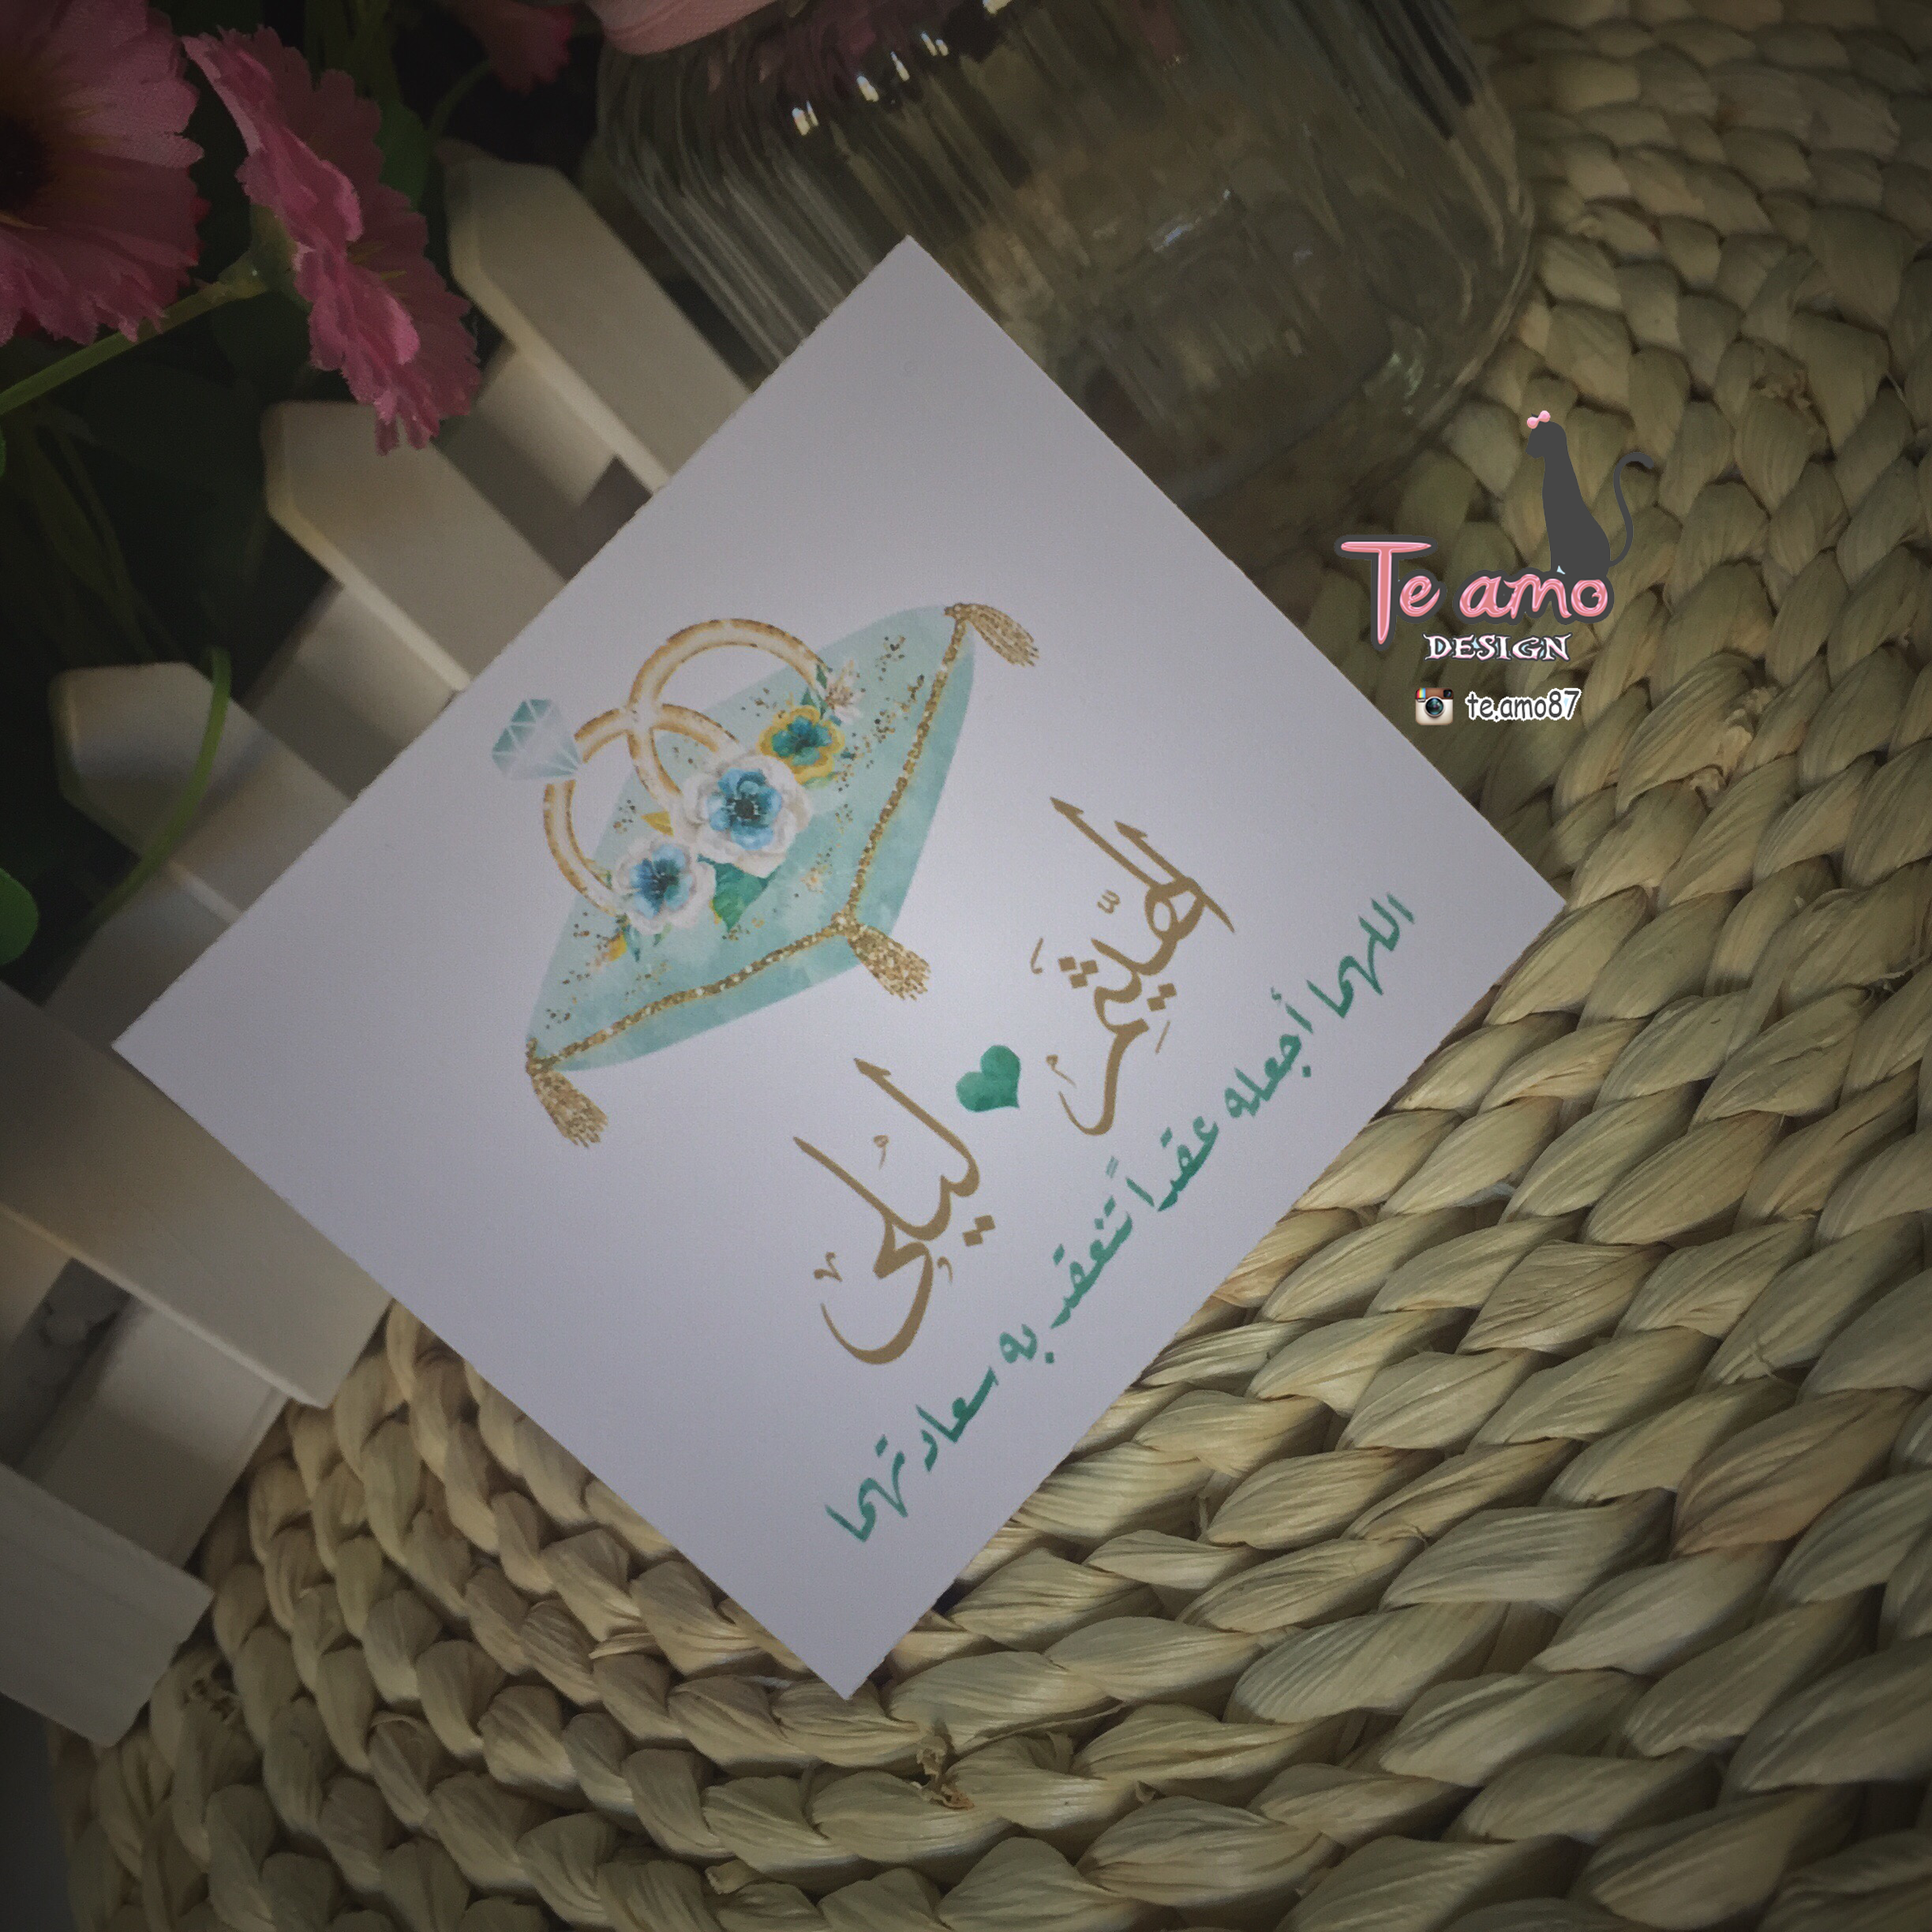 كرت طاوله Wedding Cards Place Card Holders Instagram